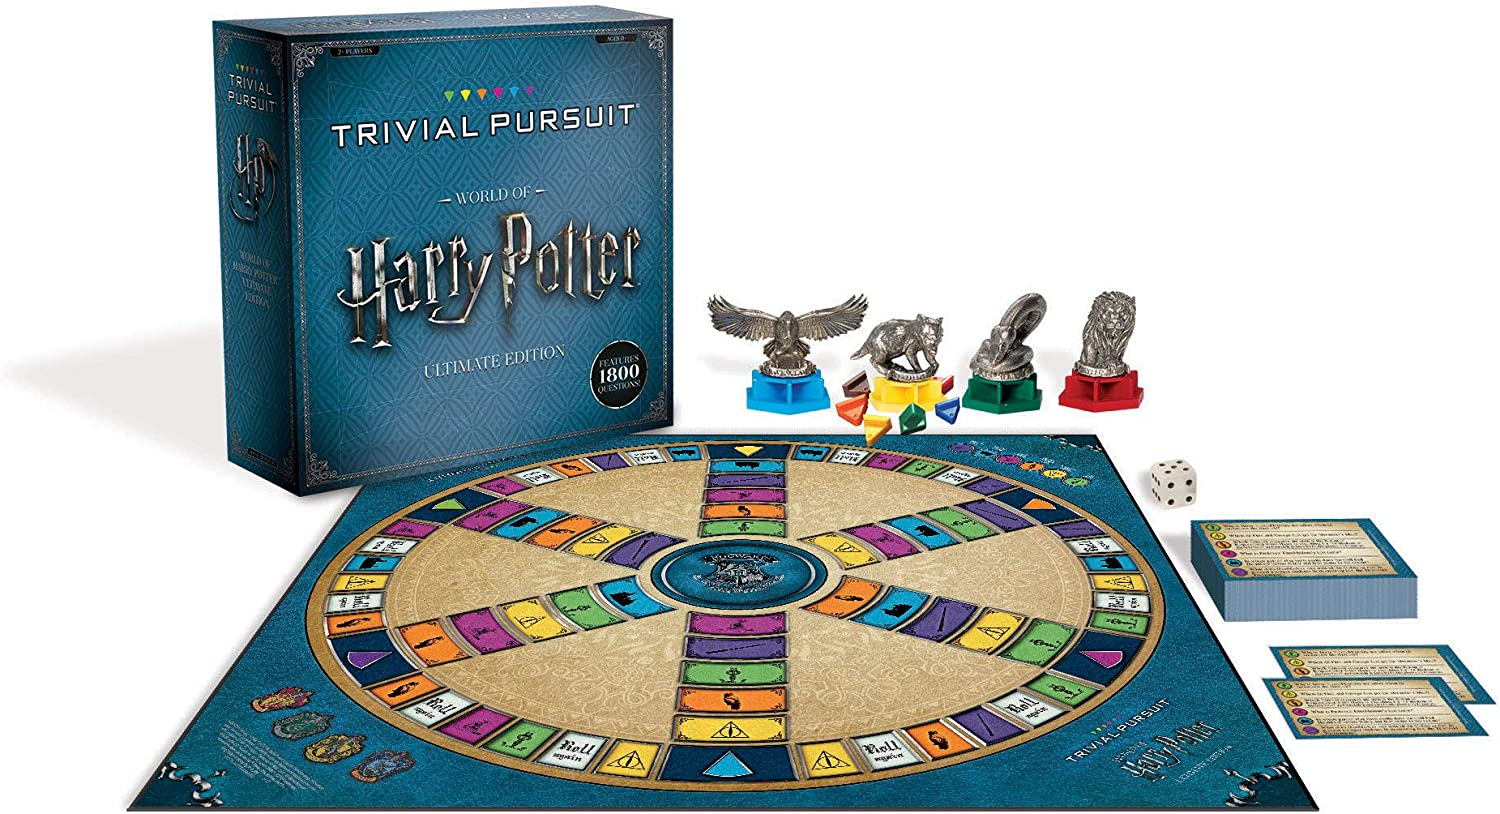 USAopoly World of Harry Potter Ultimate Ultimativ Edition Trivial ...